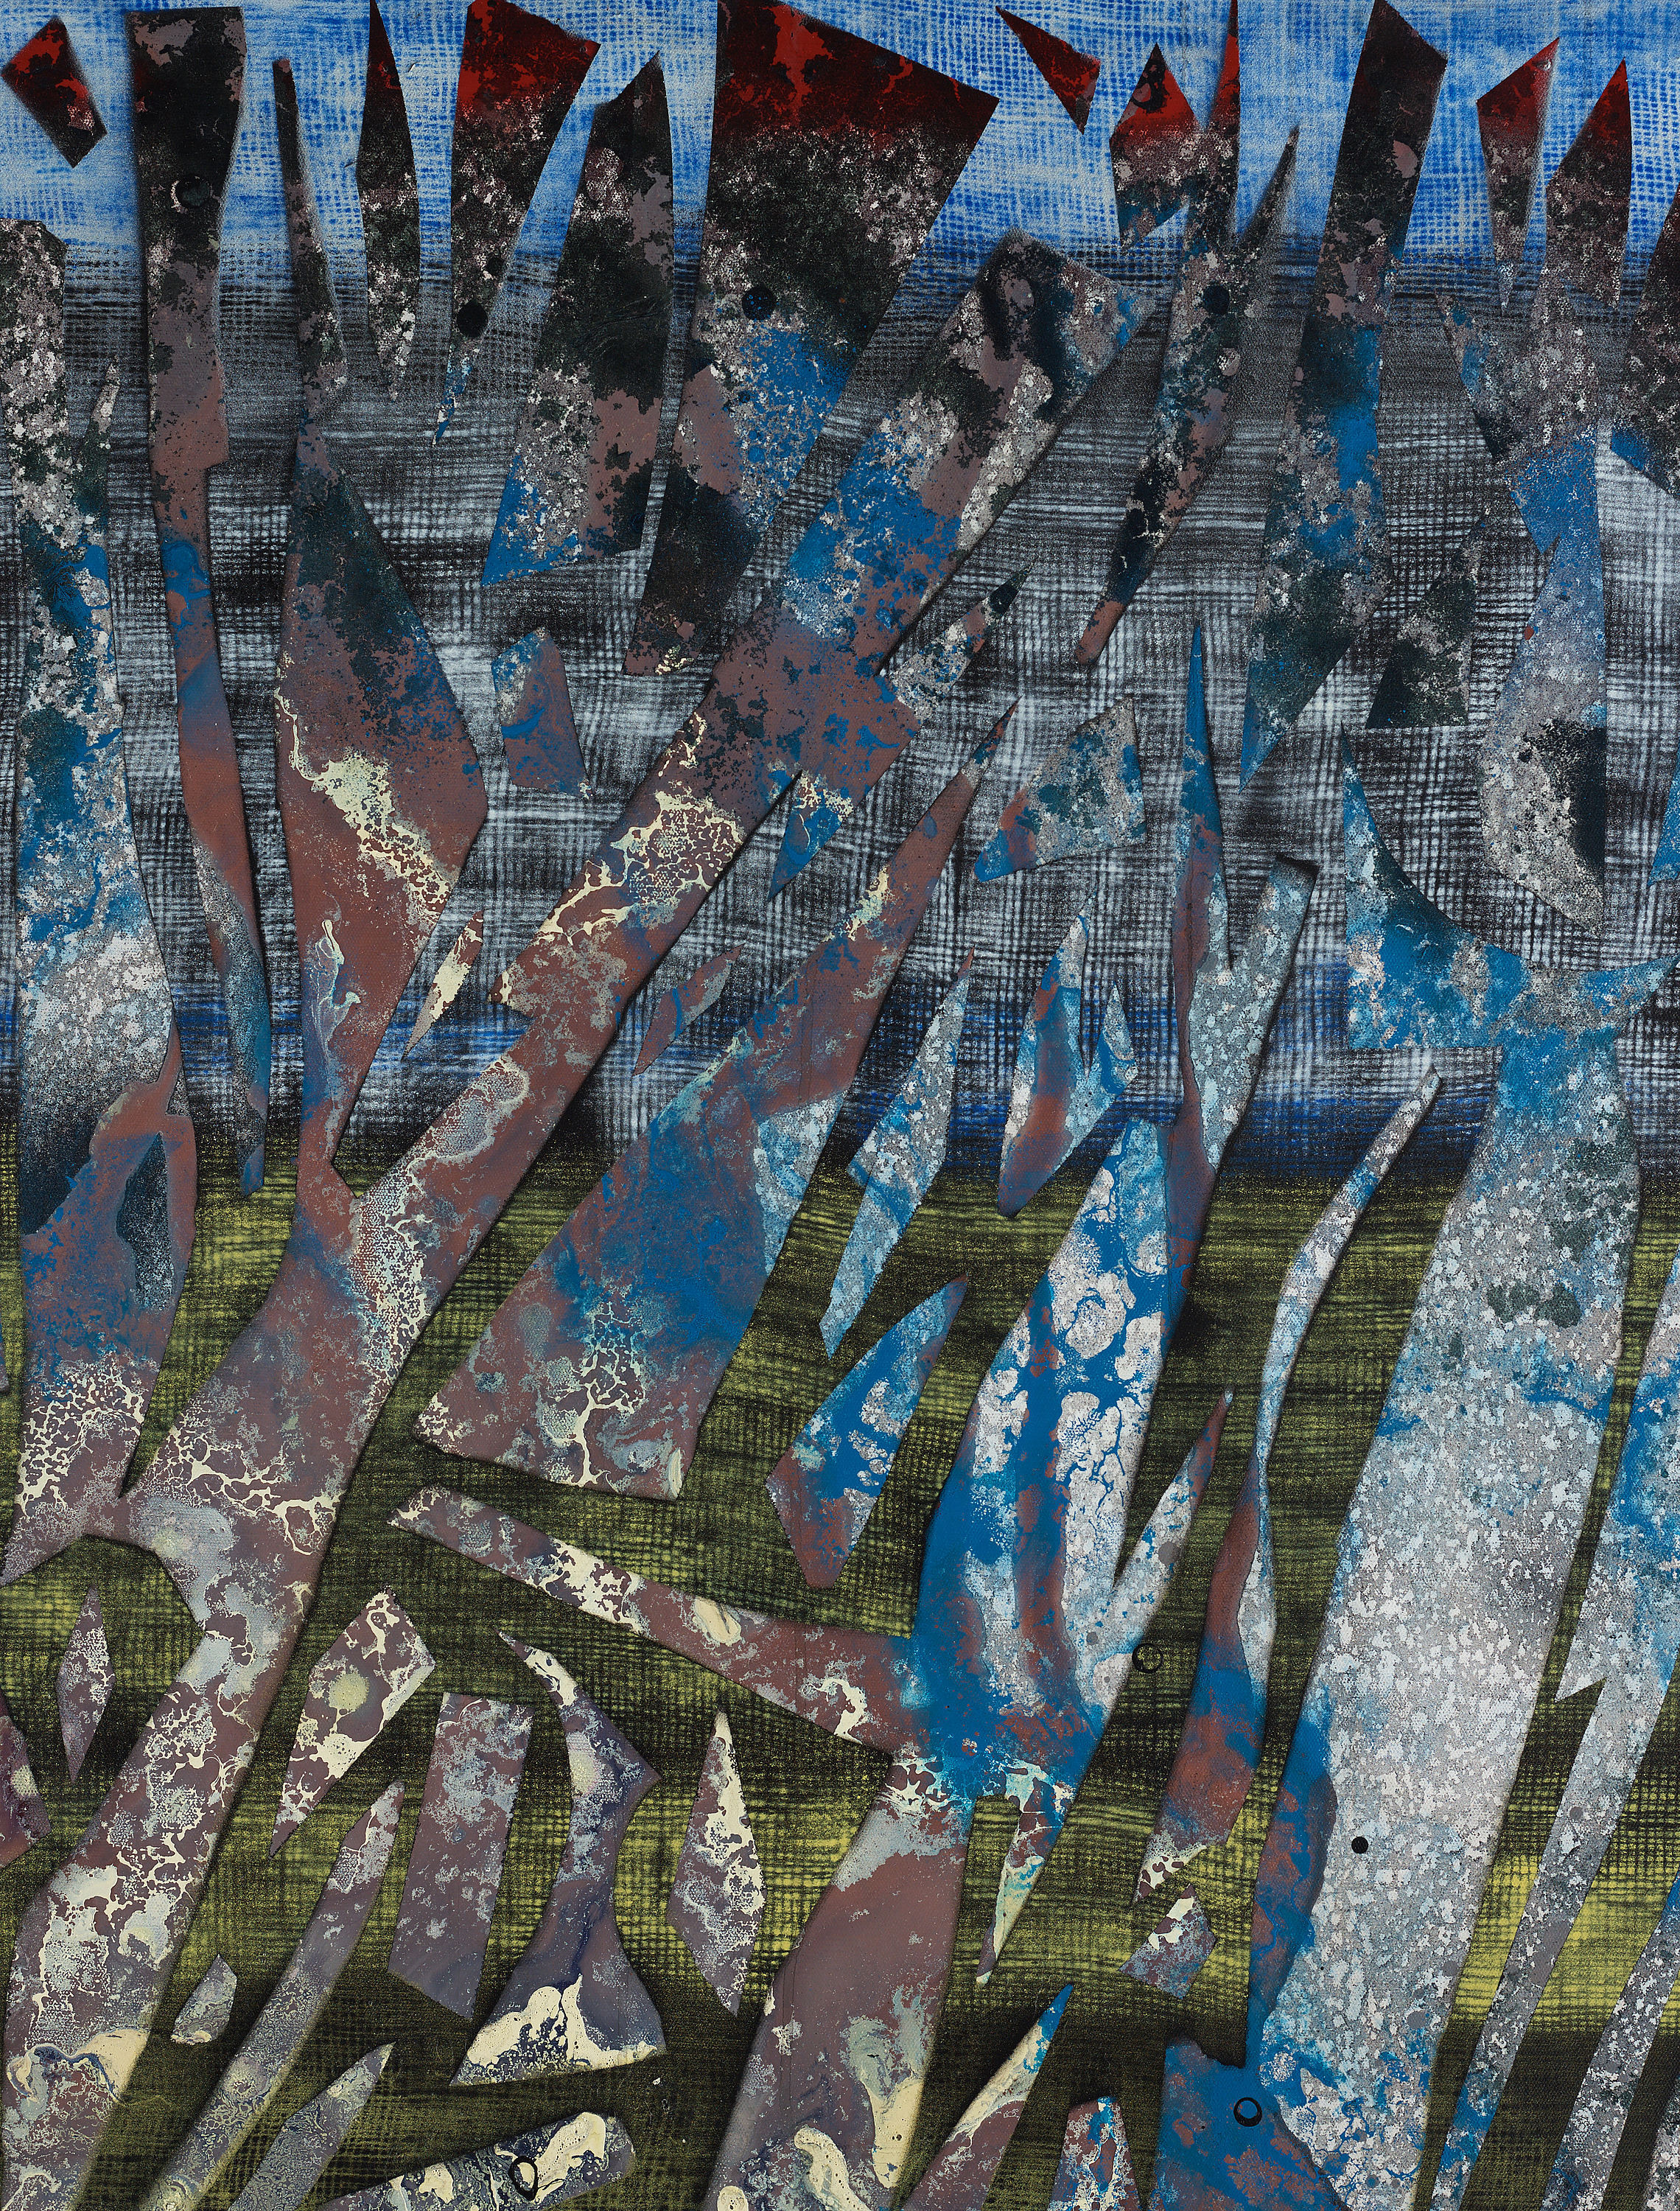 ALFRED BOMAN, signed and dated 2013 on verso  Acrylic paint